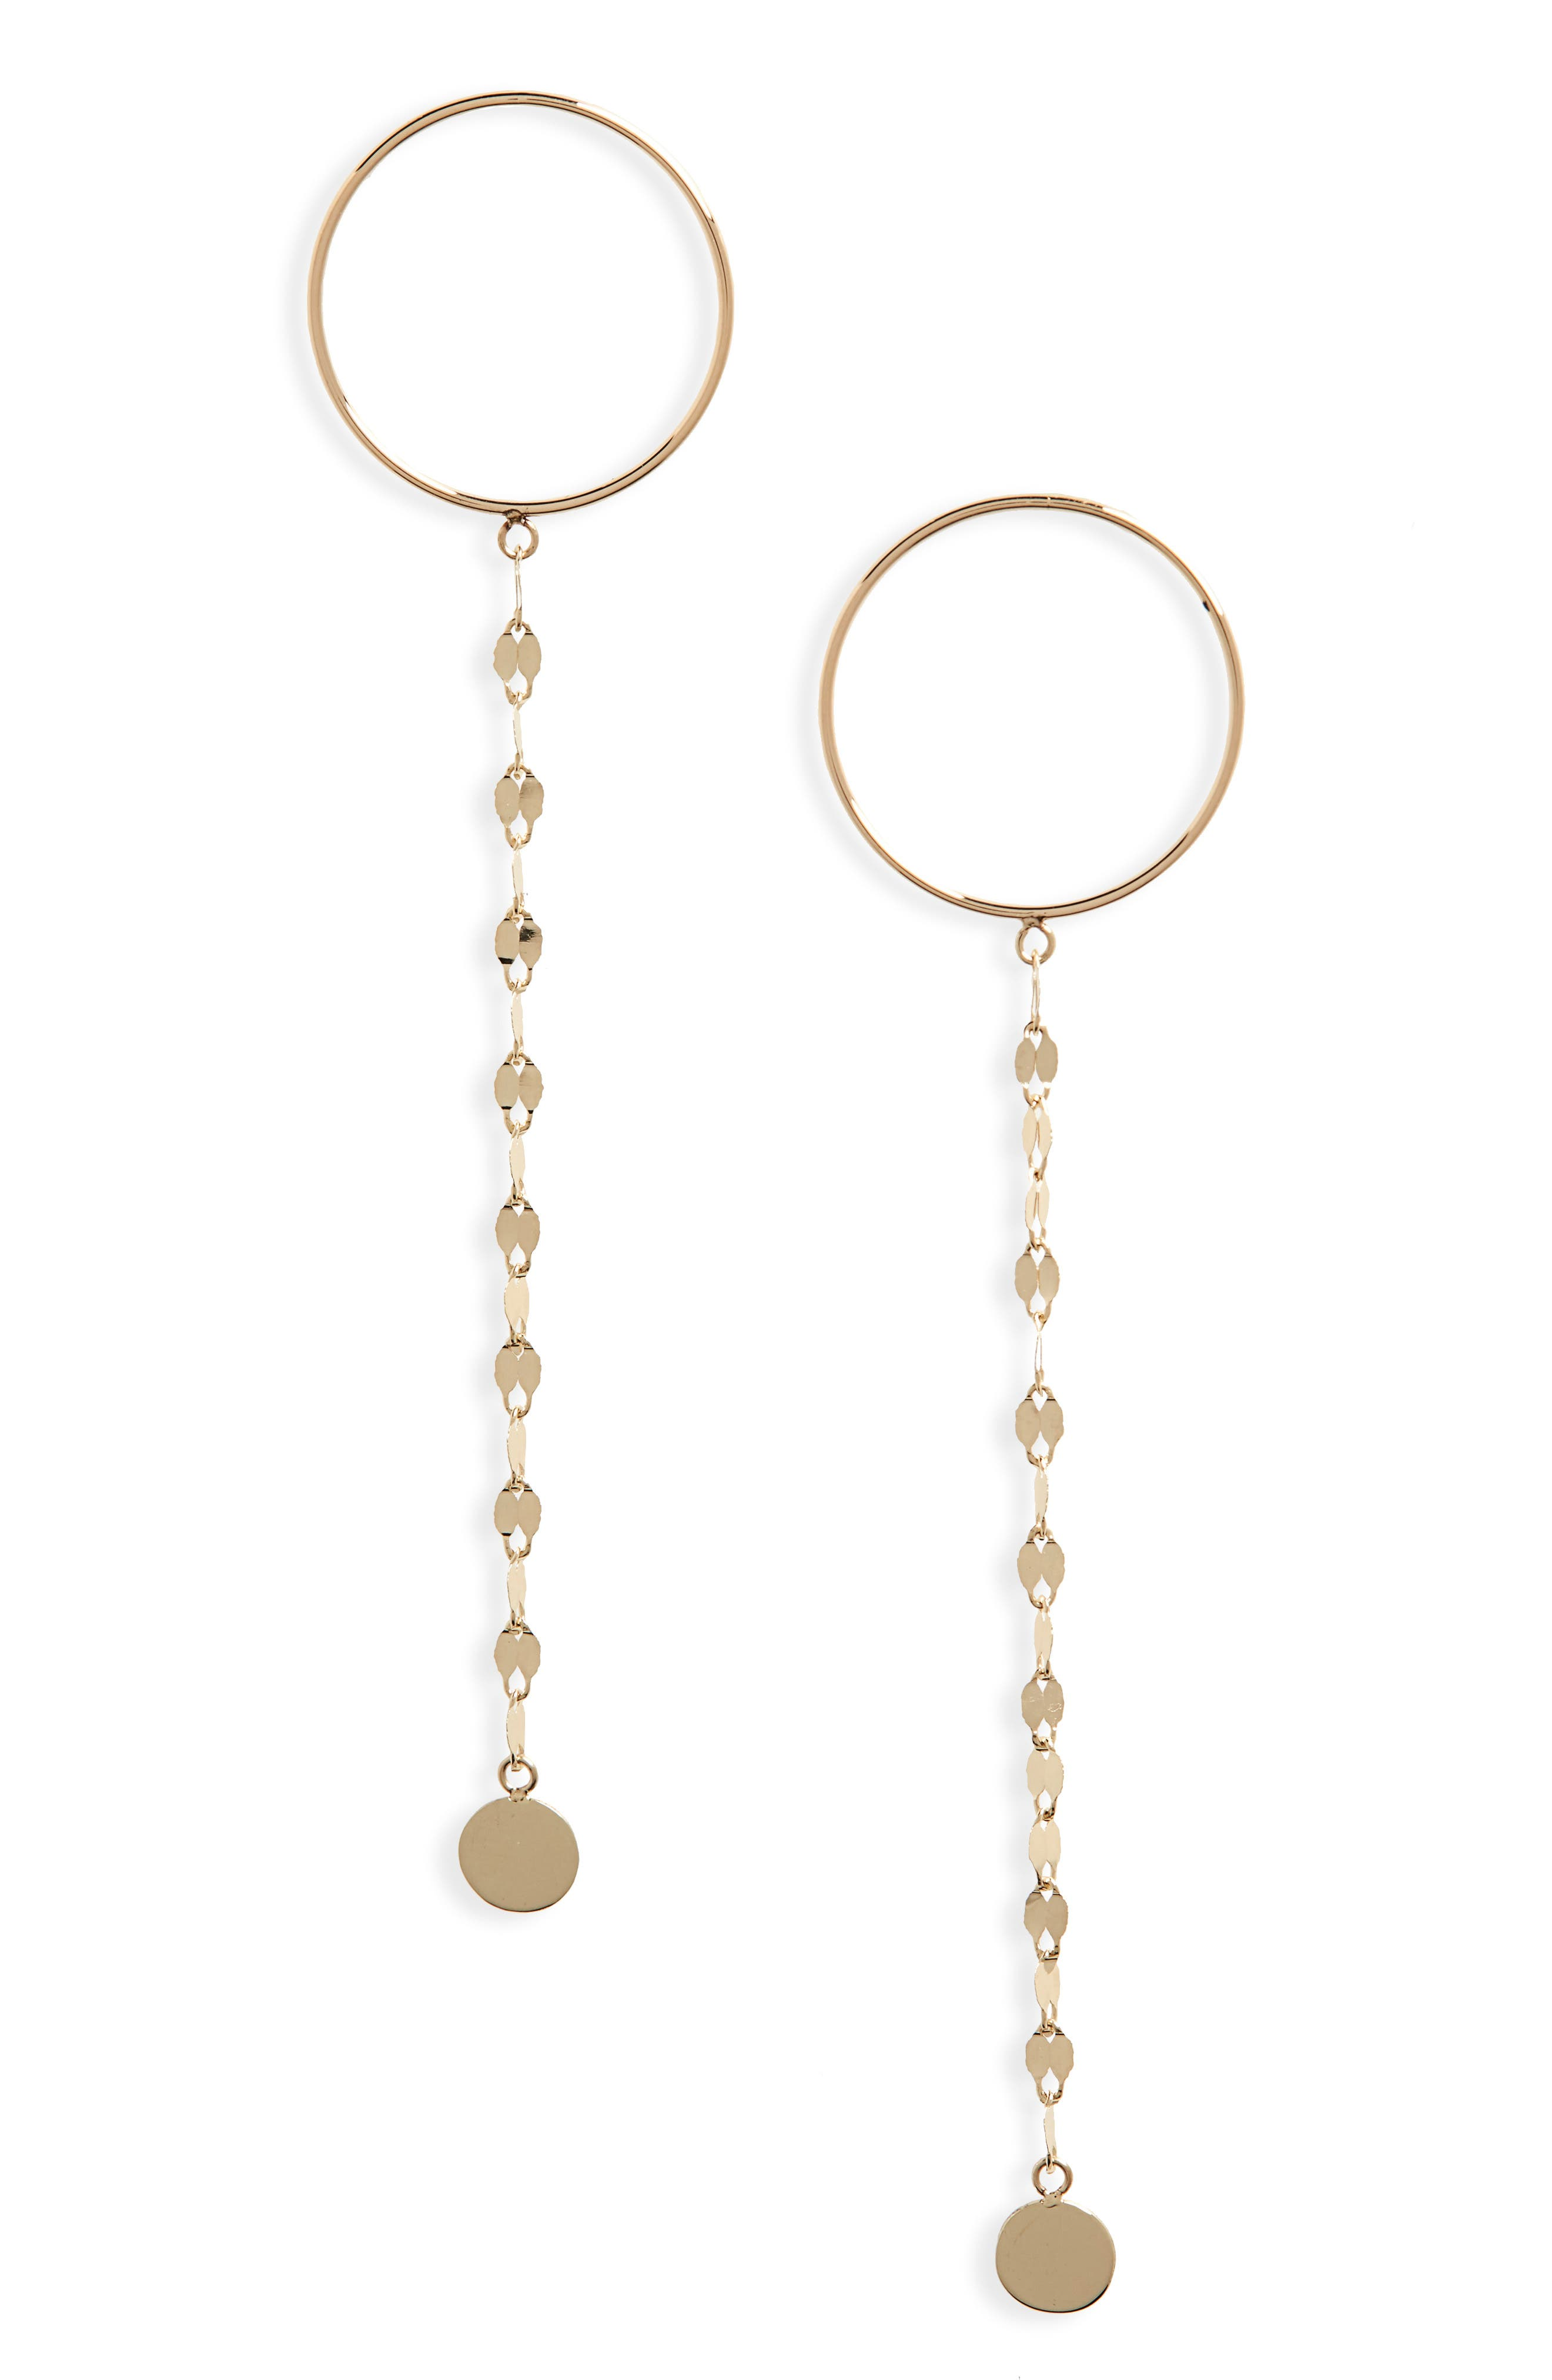 Lana Jewelry Circle Post Linear Chain Drop Earrings